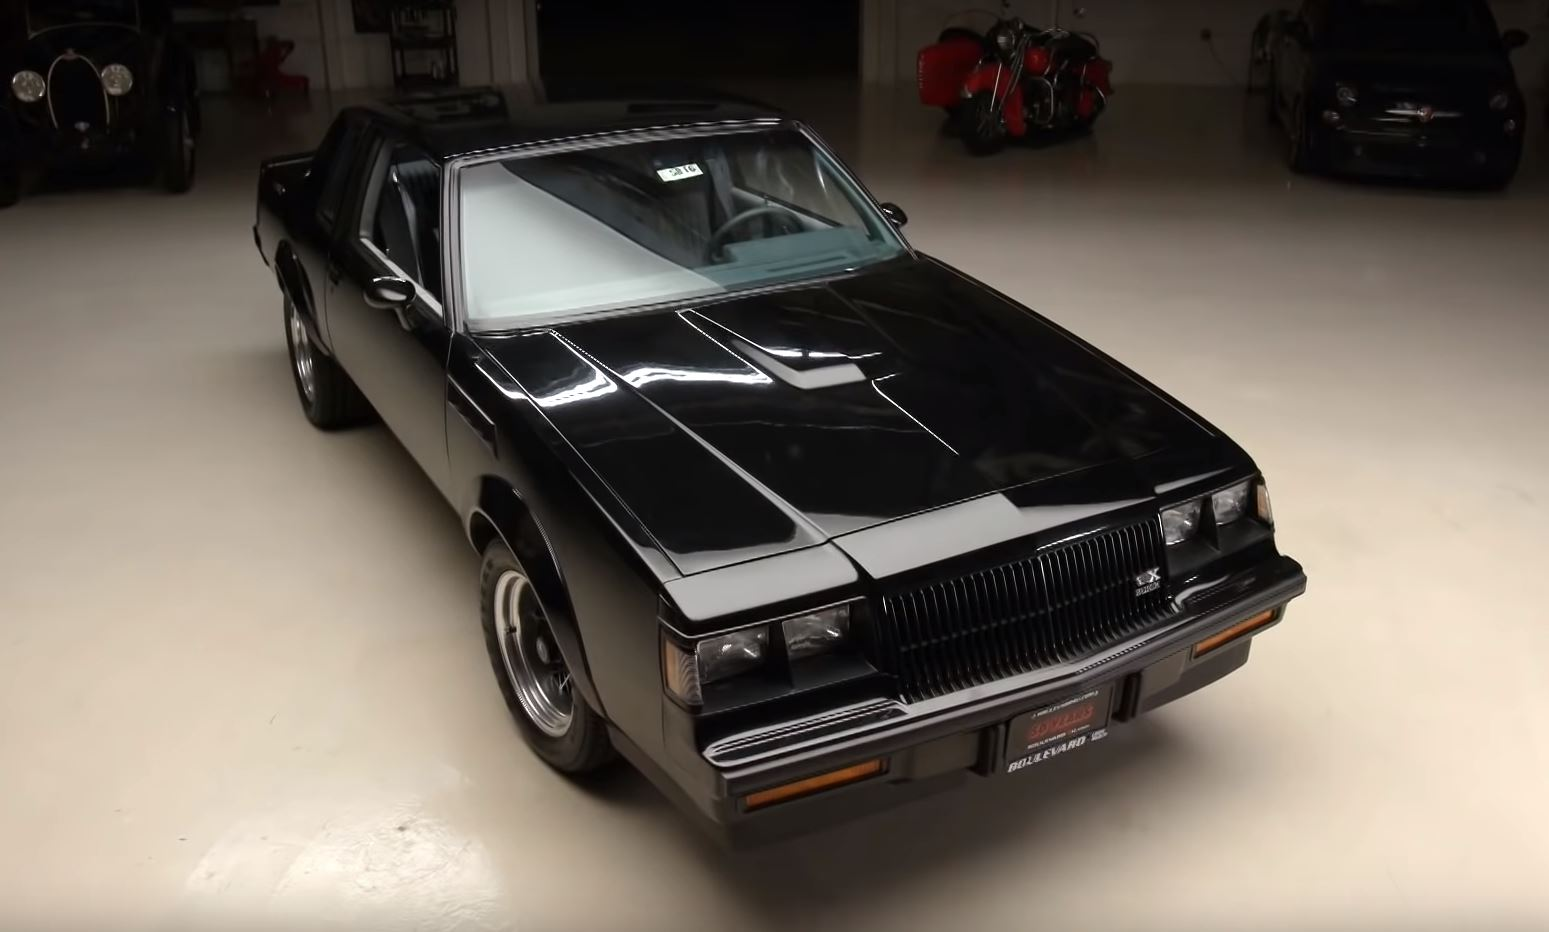 An unsold 1987 Buick GNX visits Jay Leno's Garage - Motor Authority